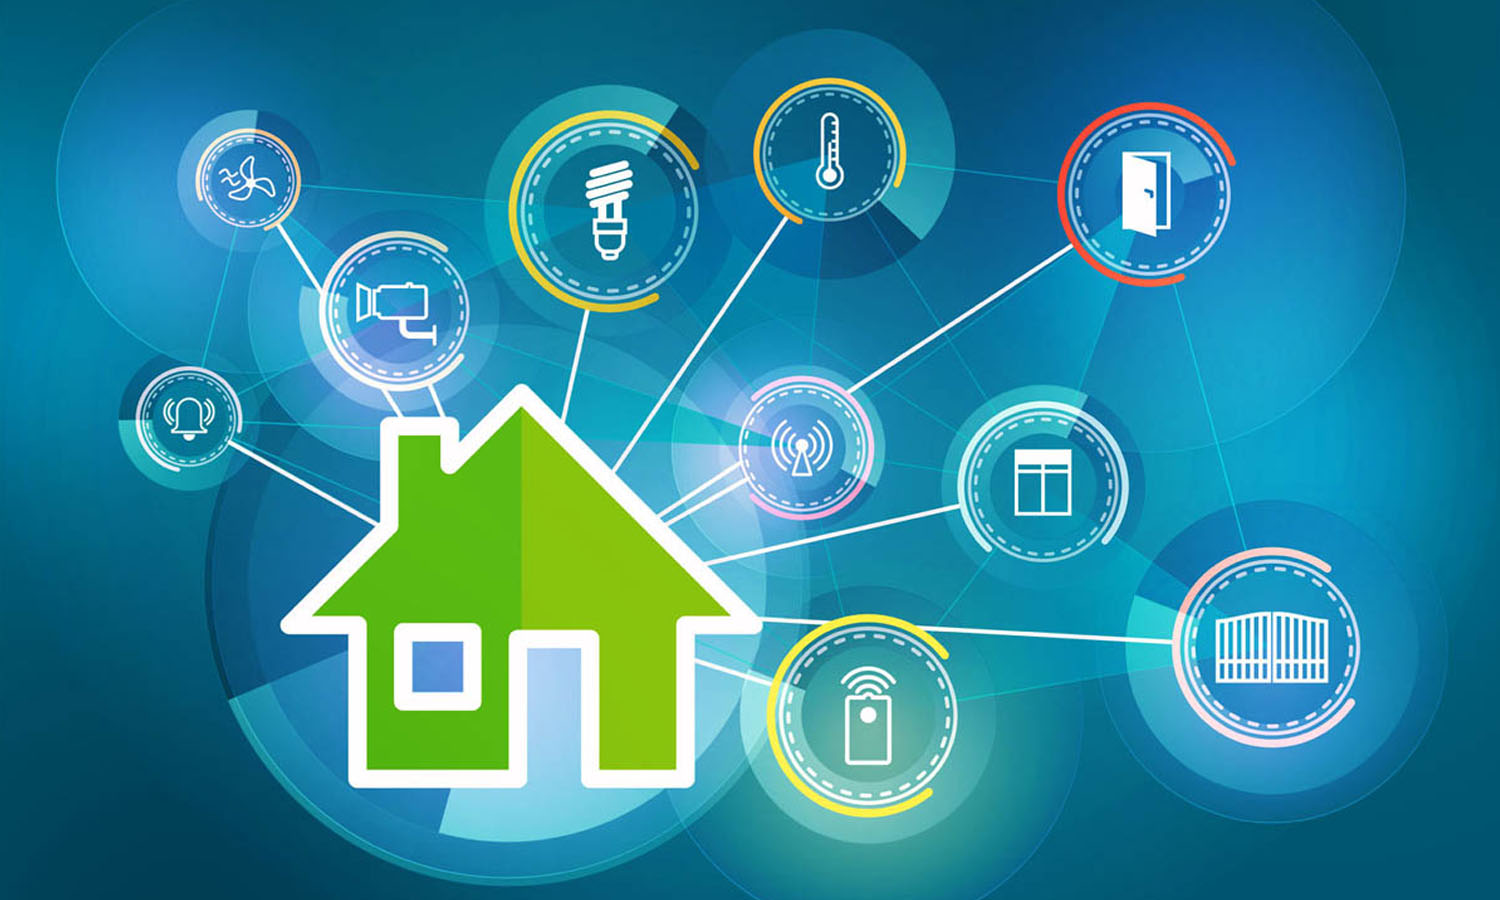 5 Home Automation Ideas with IoT to make Life Easier